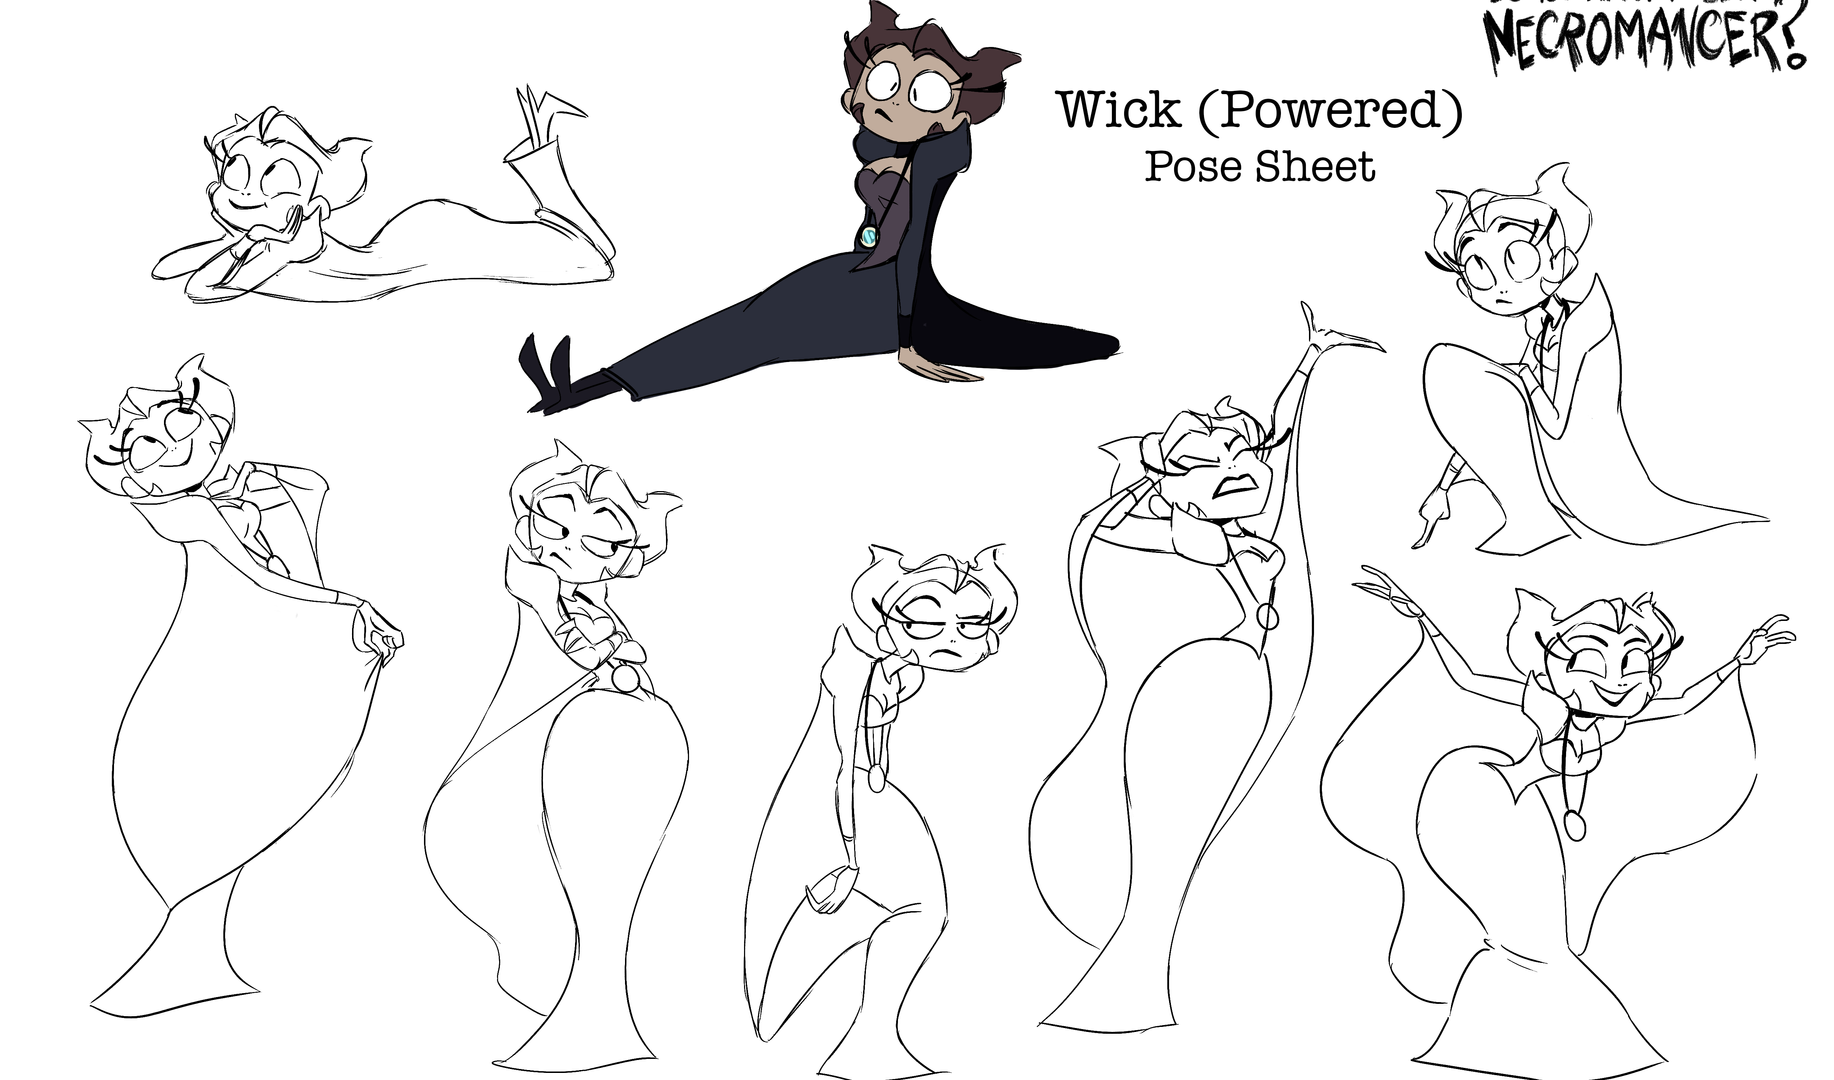 Pose Sheet - Wick (Powered)